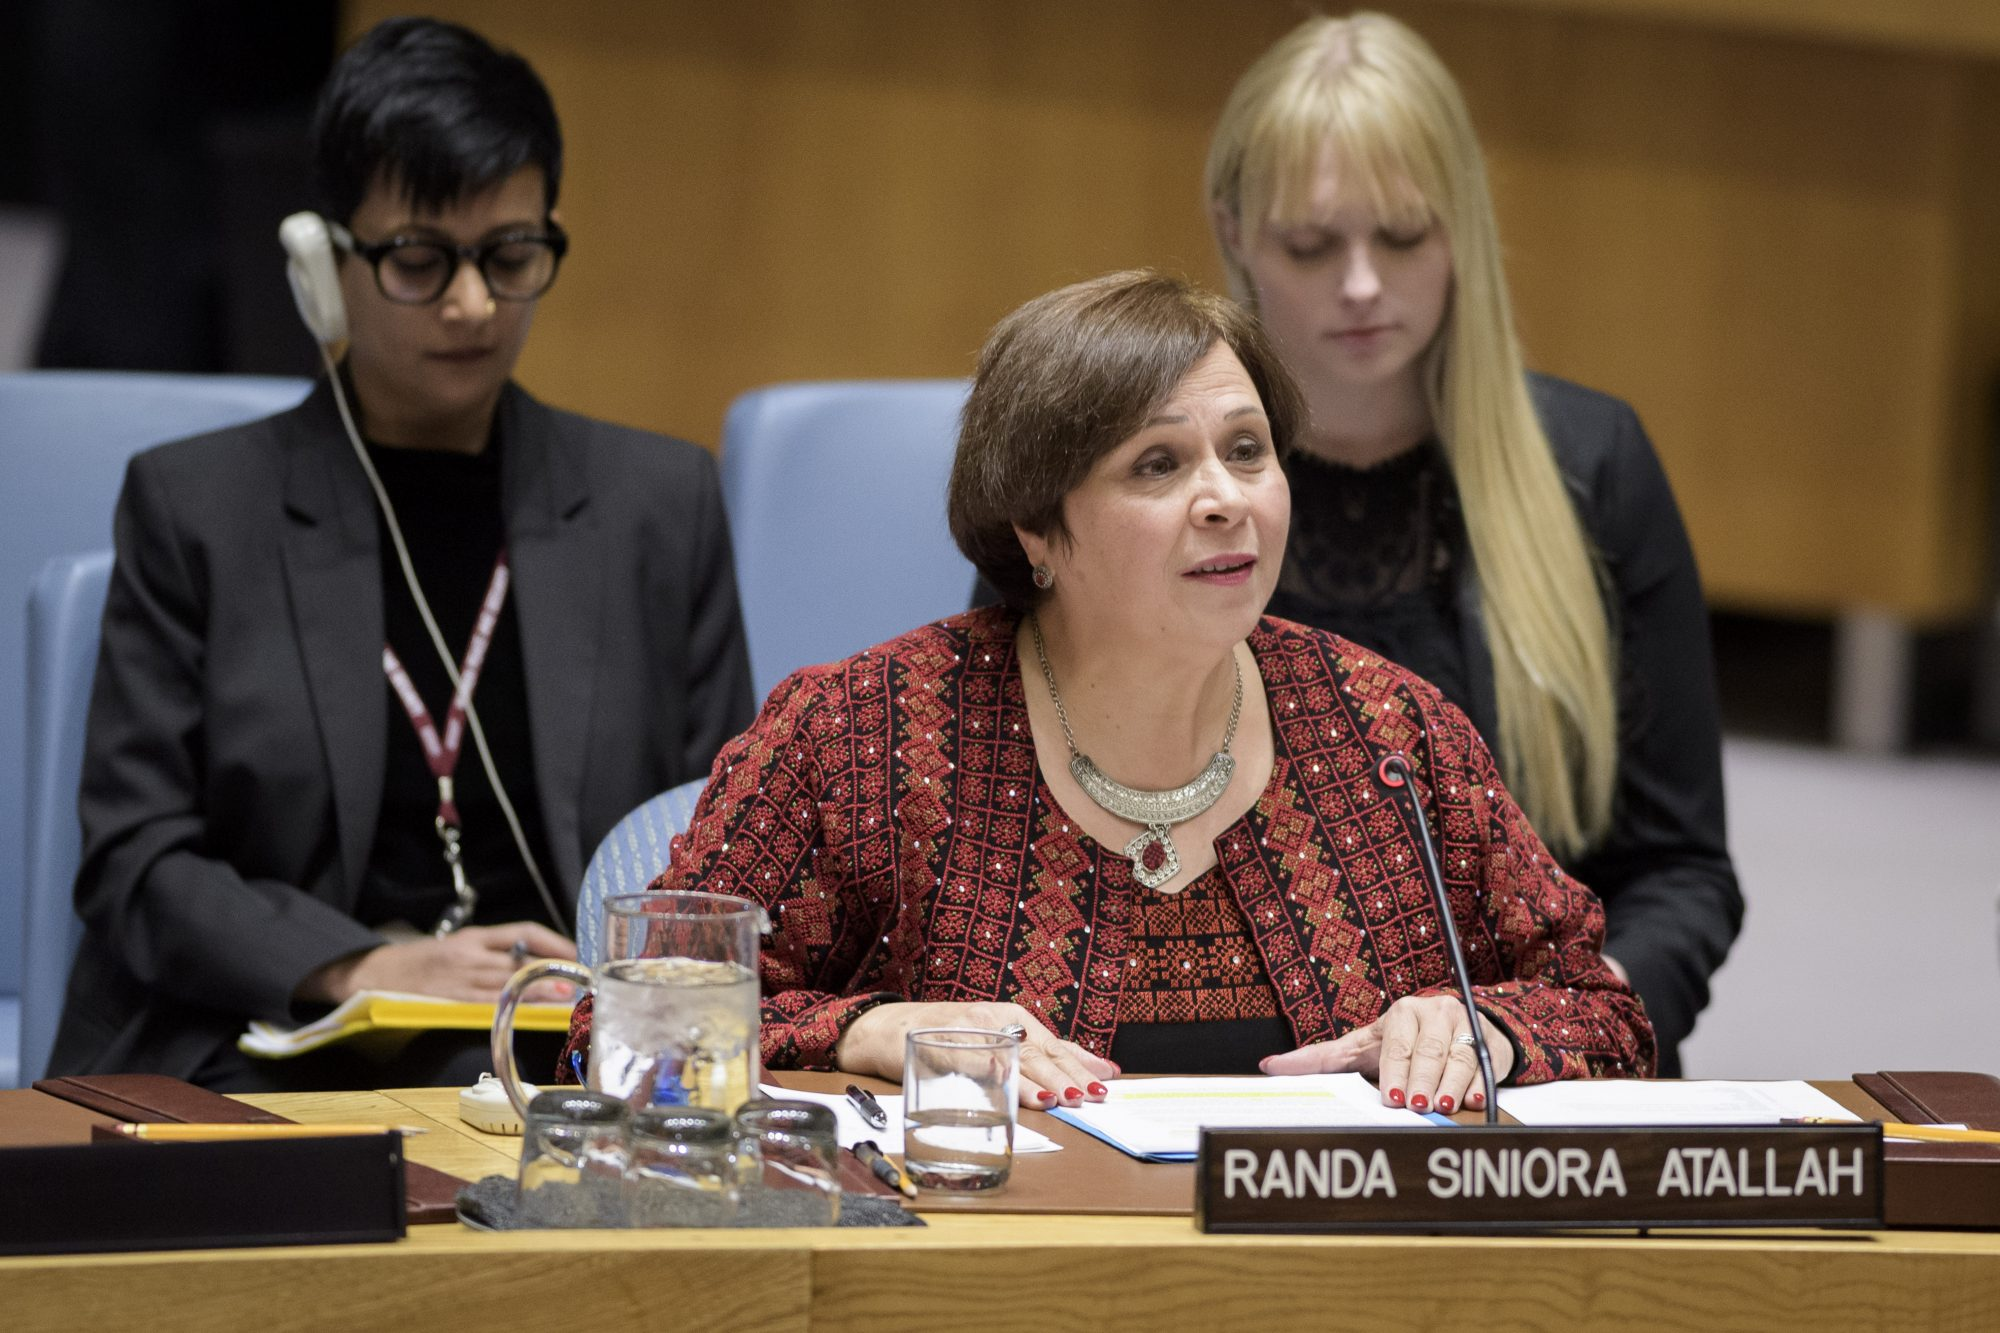 Statement by Ms. Randa Siniora at UN Security Council Open Debate on Women, Peace and Security